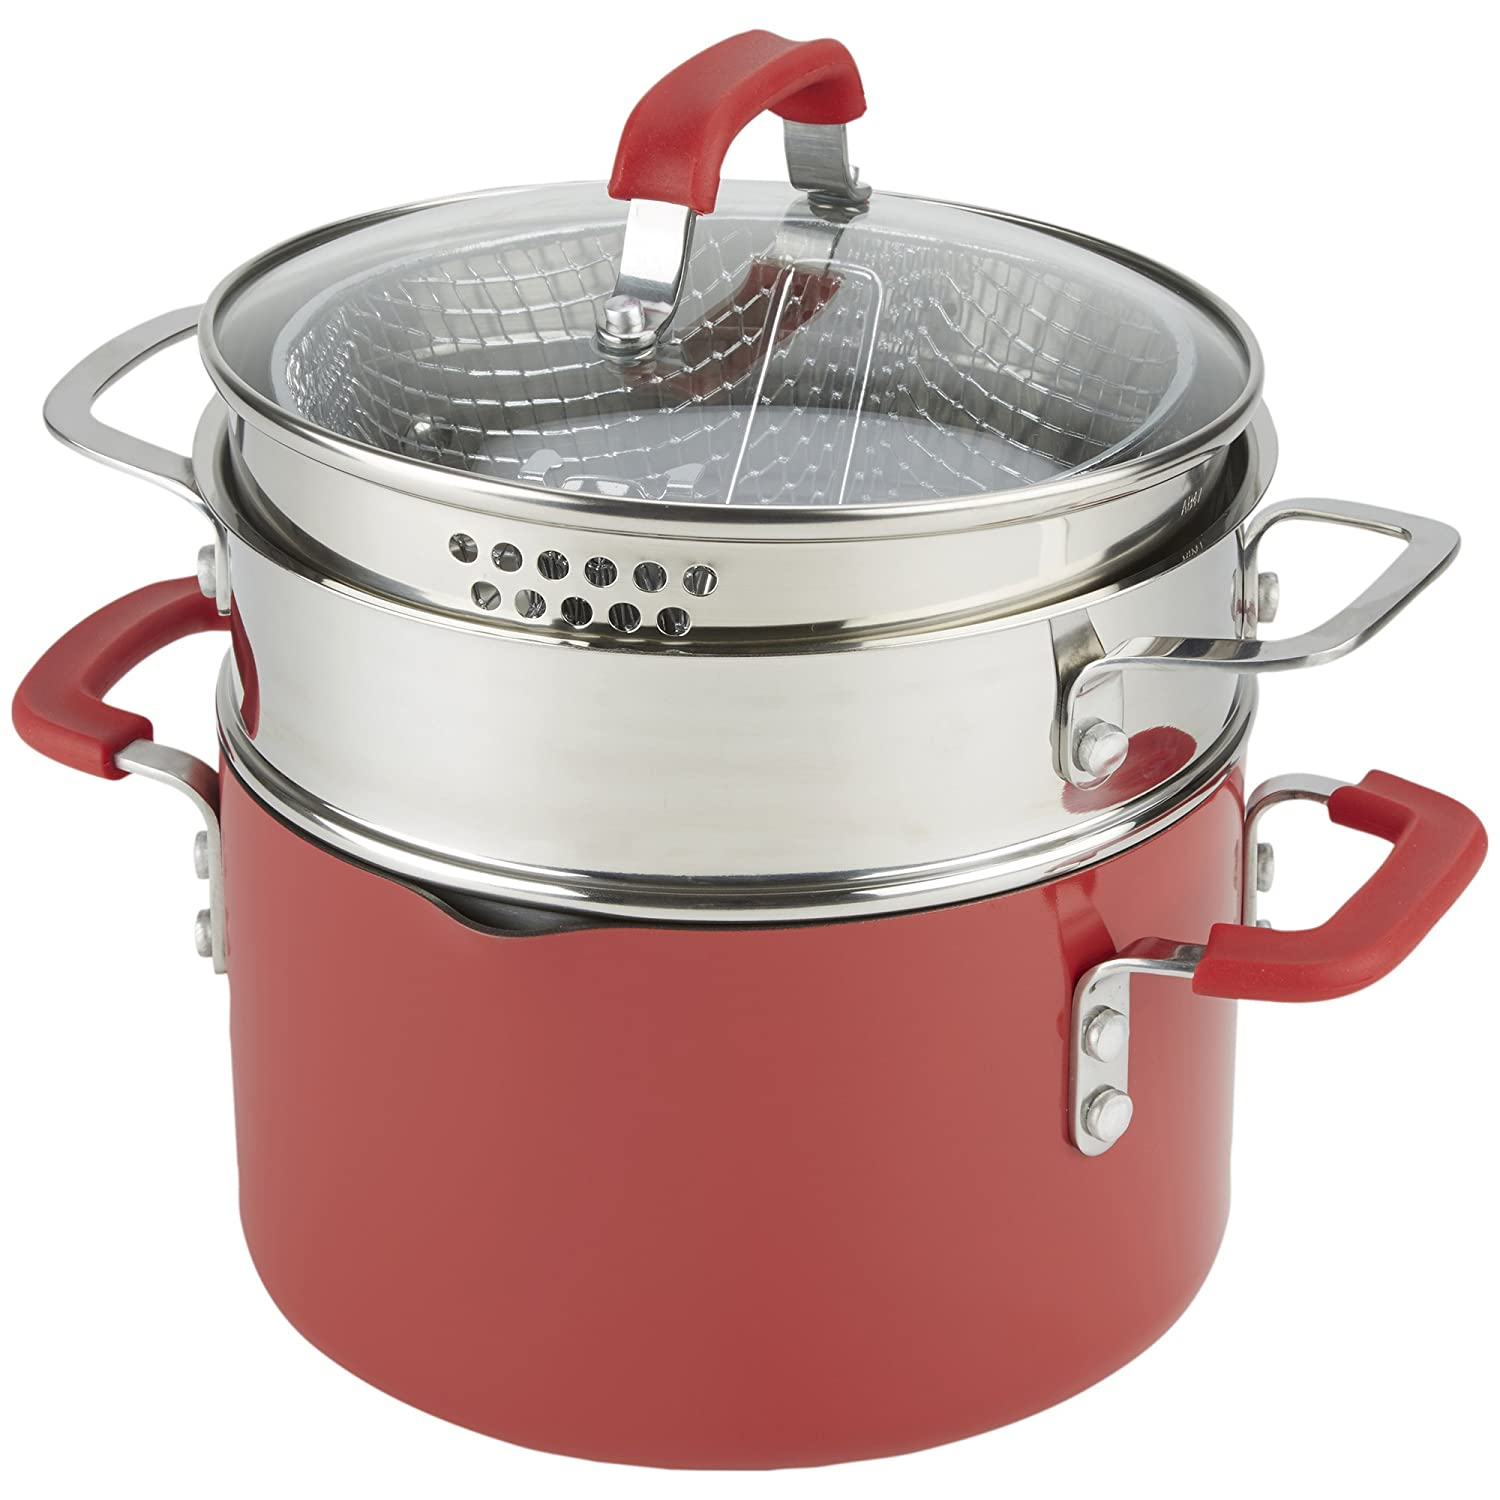 Emeril Lagasse 63053 Nonstick 4-Quart Multi-Cooker Saucepot with Fryer and Steamer Attachments, Red